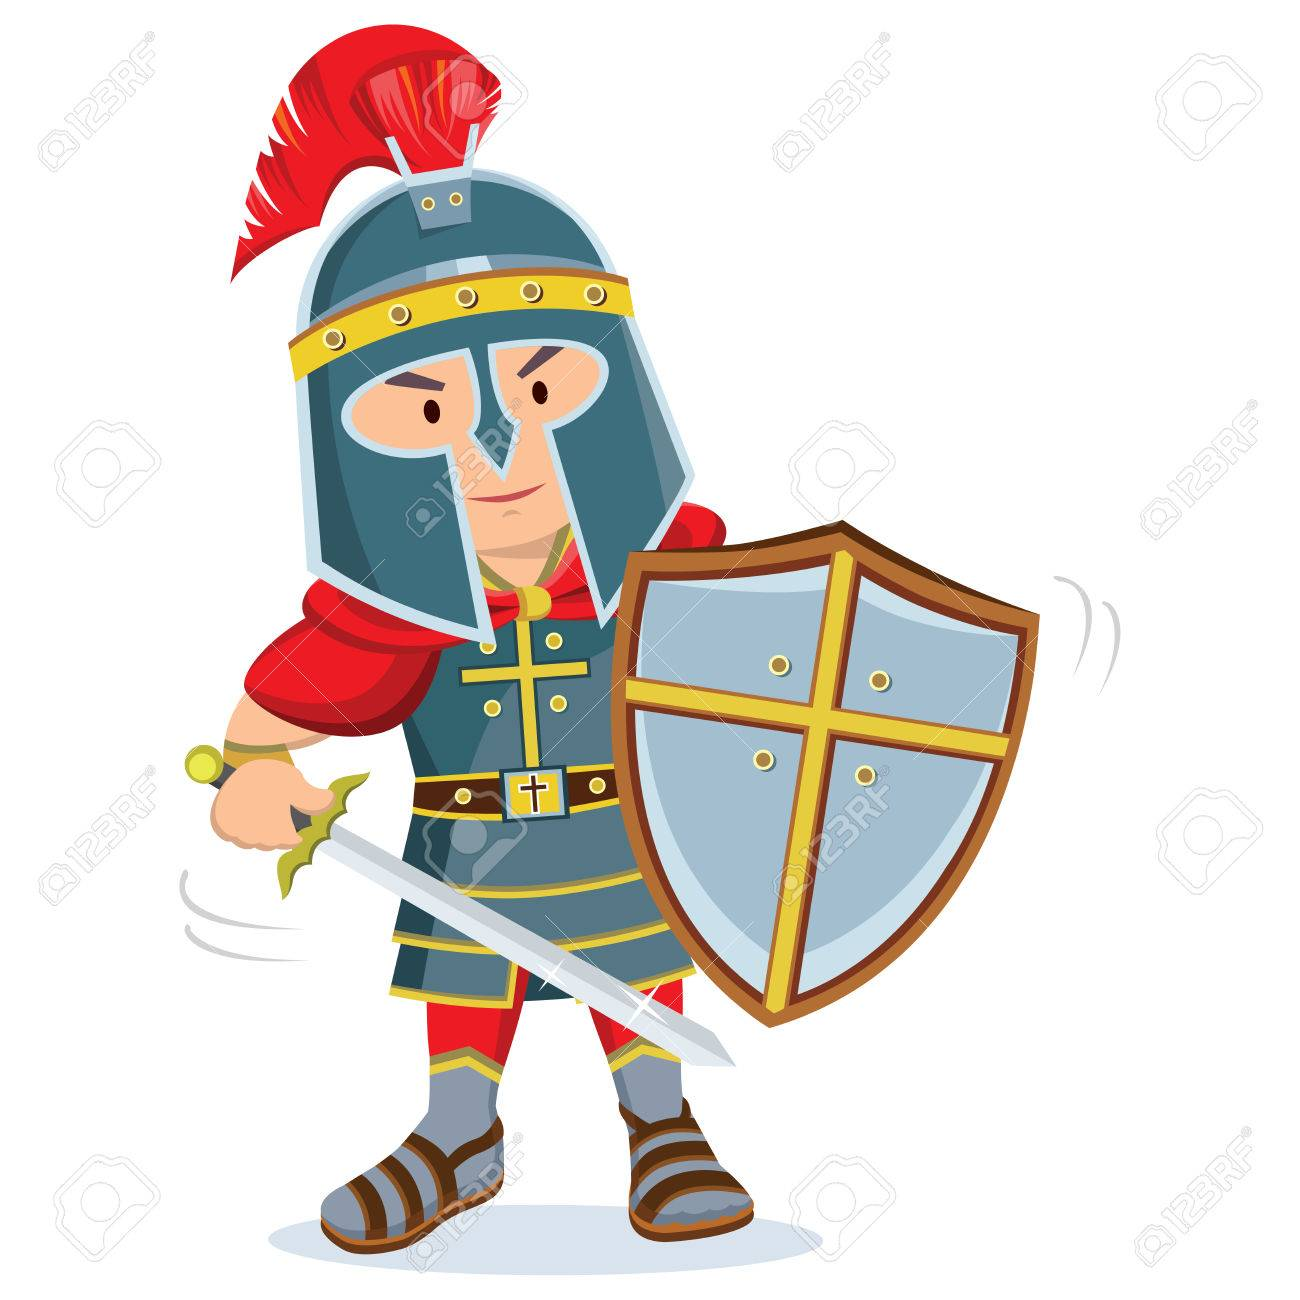 Knight. Warrior with armor and shield holding a sword..